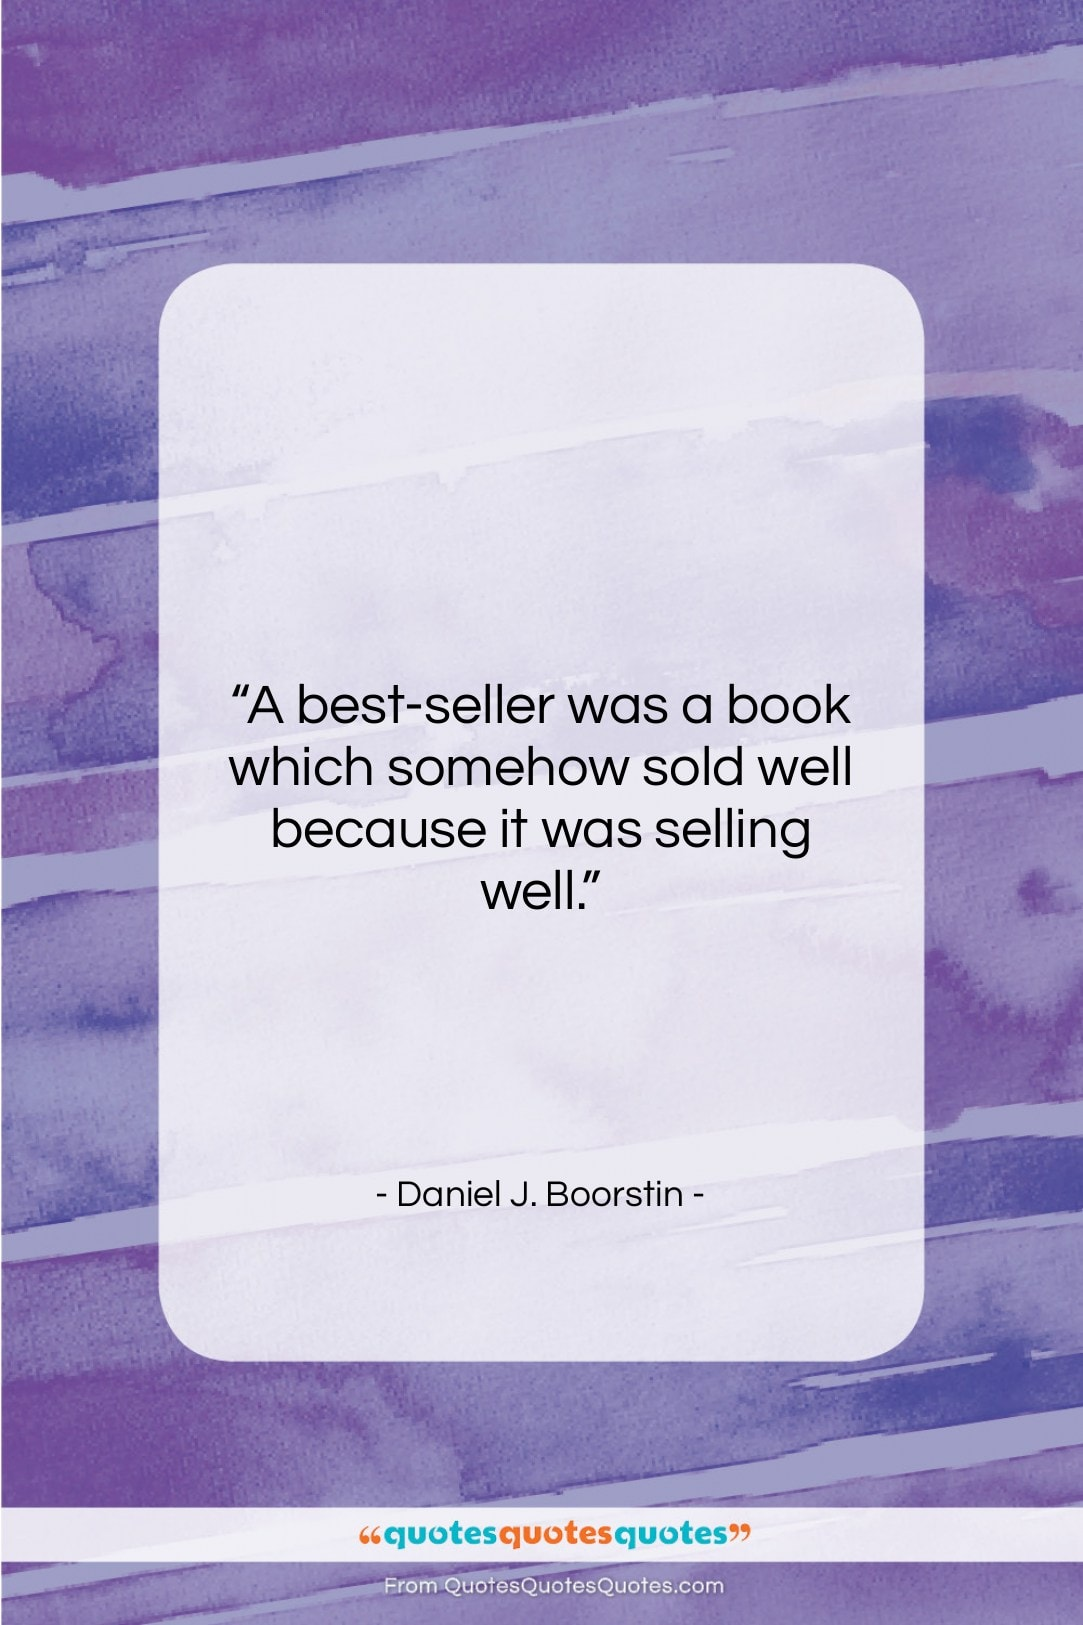 """Daniel J. Boorstin quote: """"A best-seller was a book which somehow…""""- at QuotesQuotesQuotes.com"""